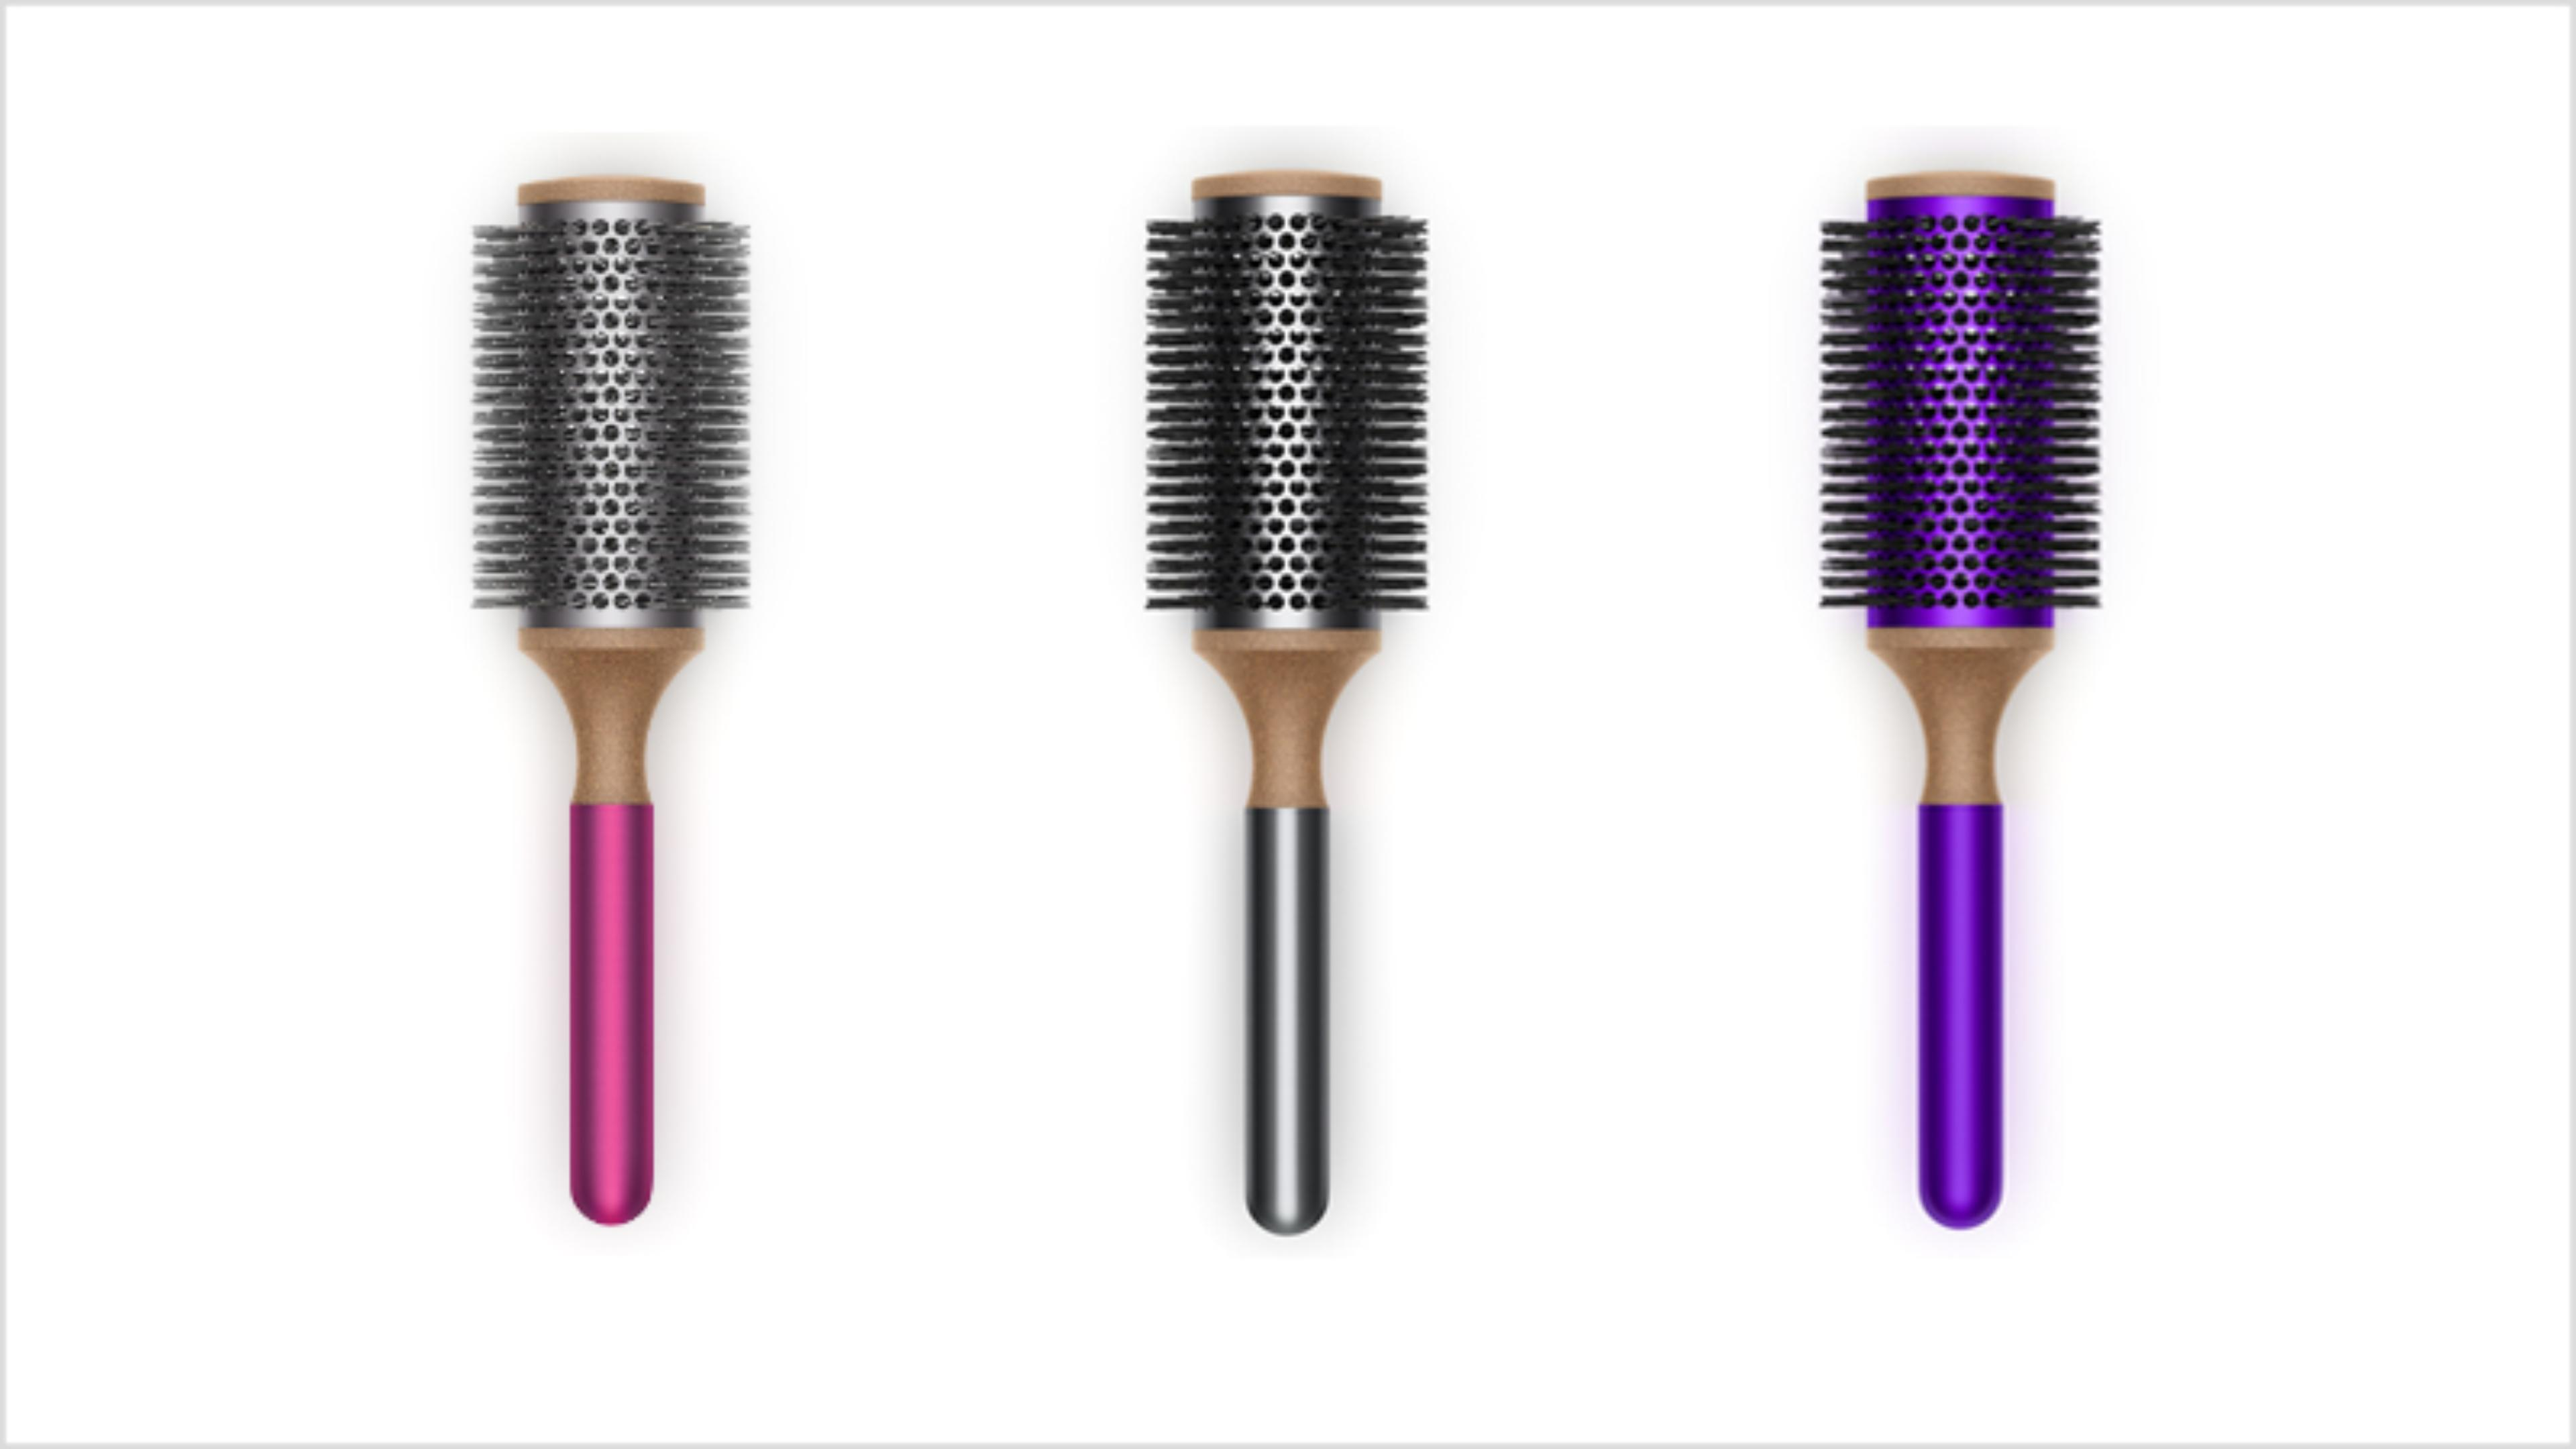 Dyson-vented barrel 45mm brush in Fuchsia, Purple and Nickel